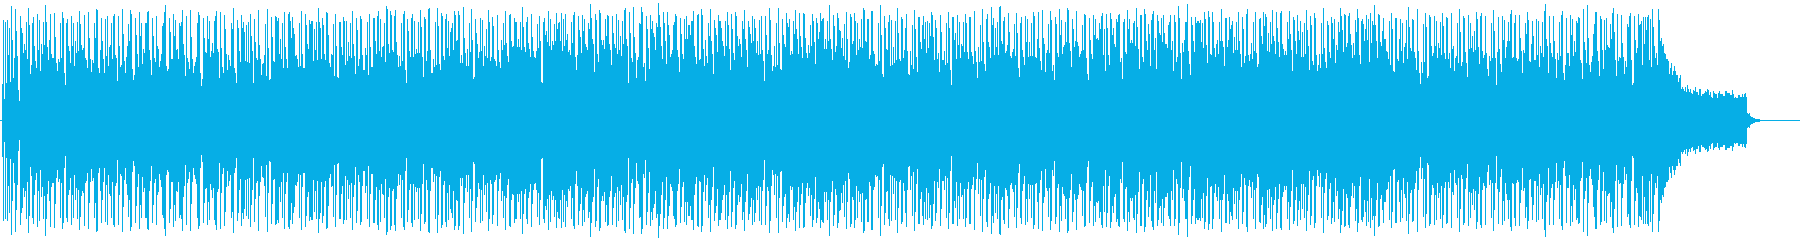 Pop and bright image with bright image's reproduced waveform